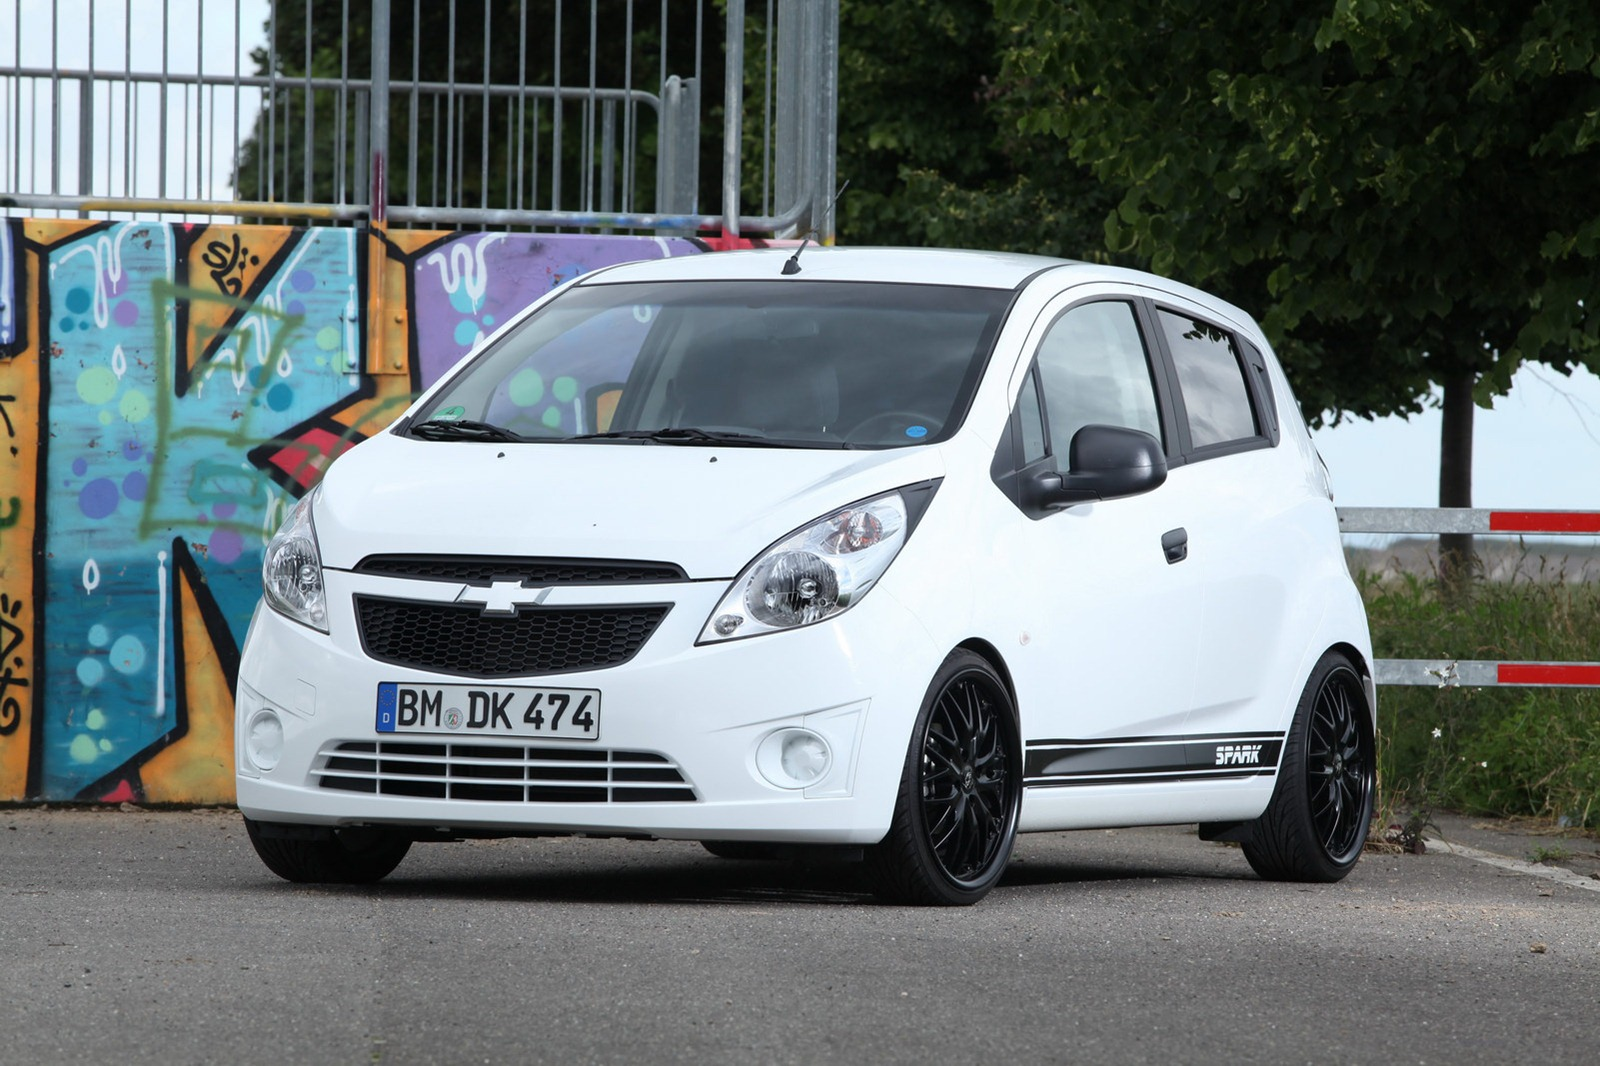 Chevrolet Spark Tuned by KBR